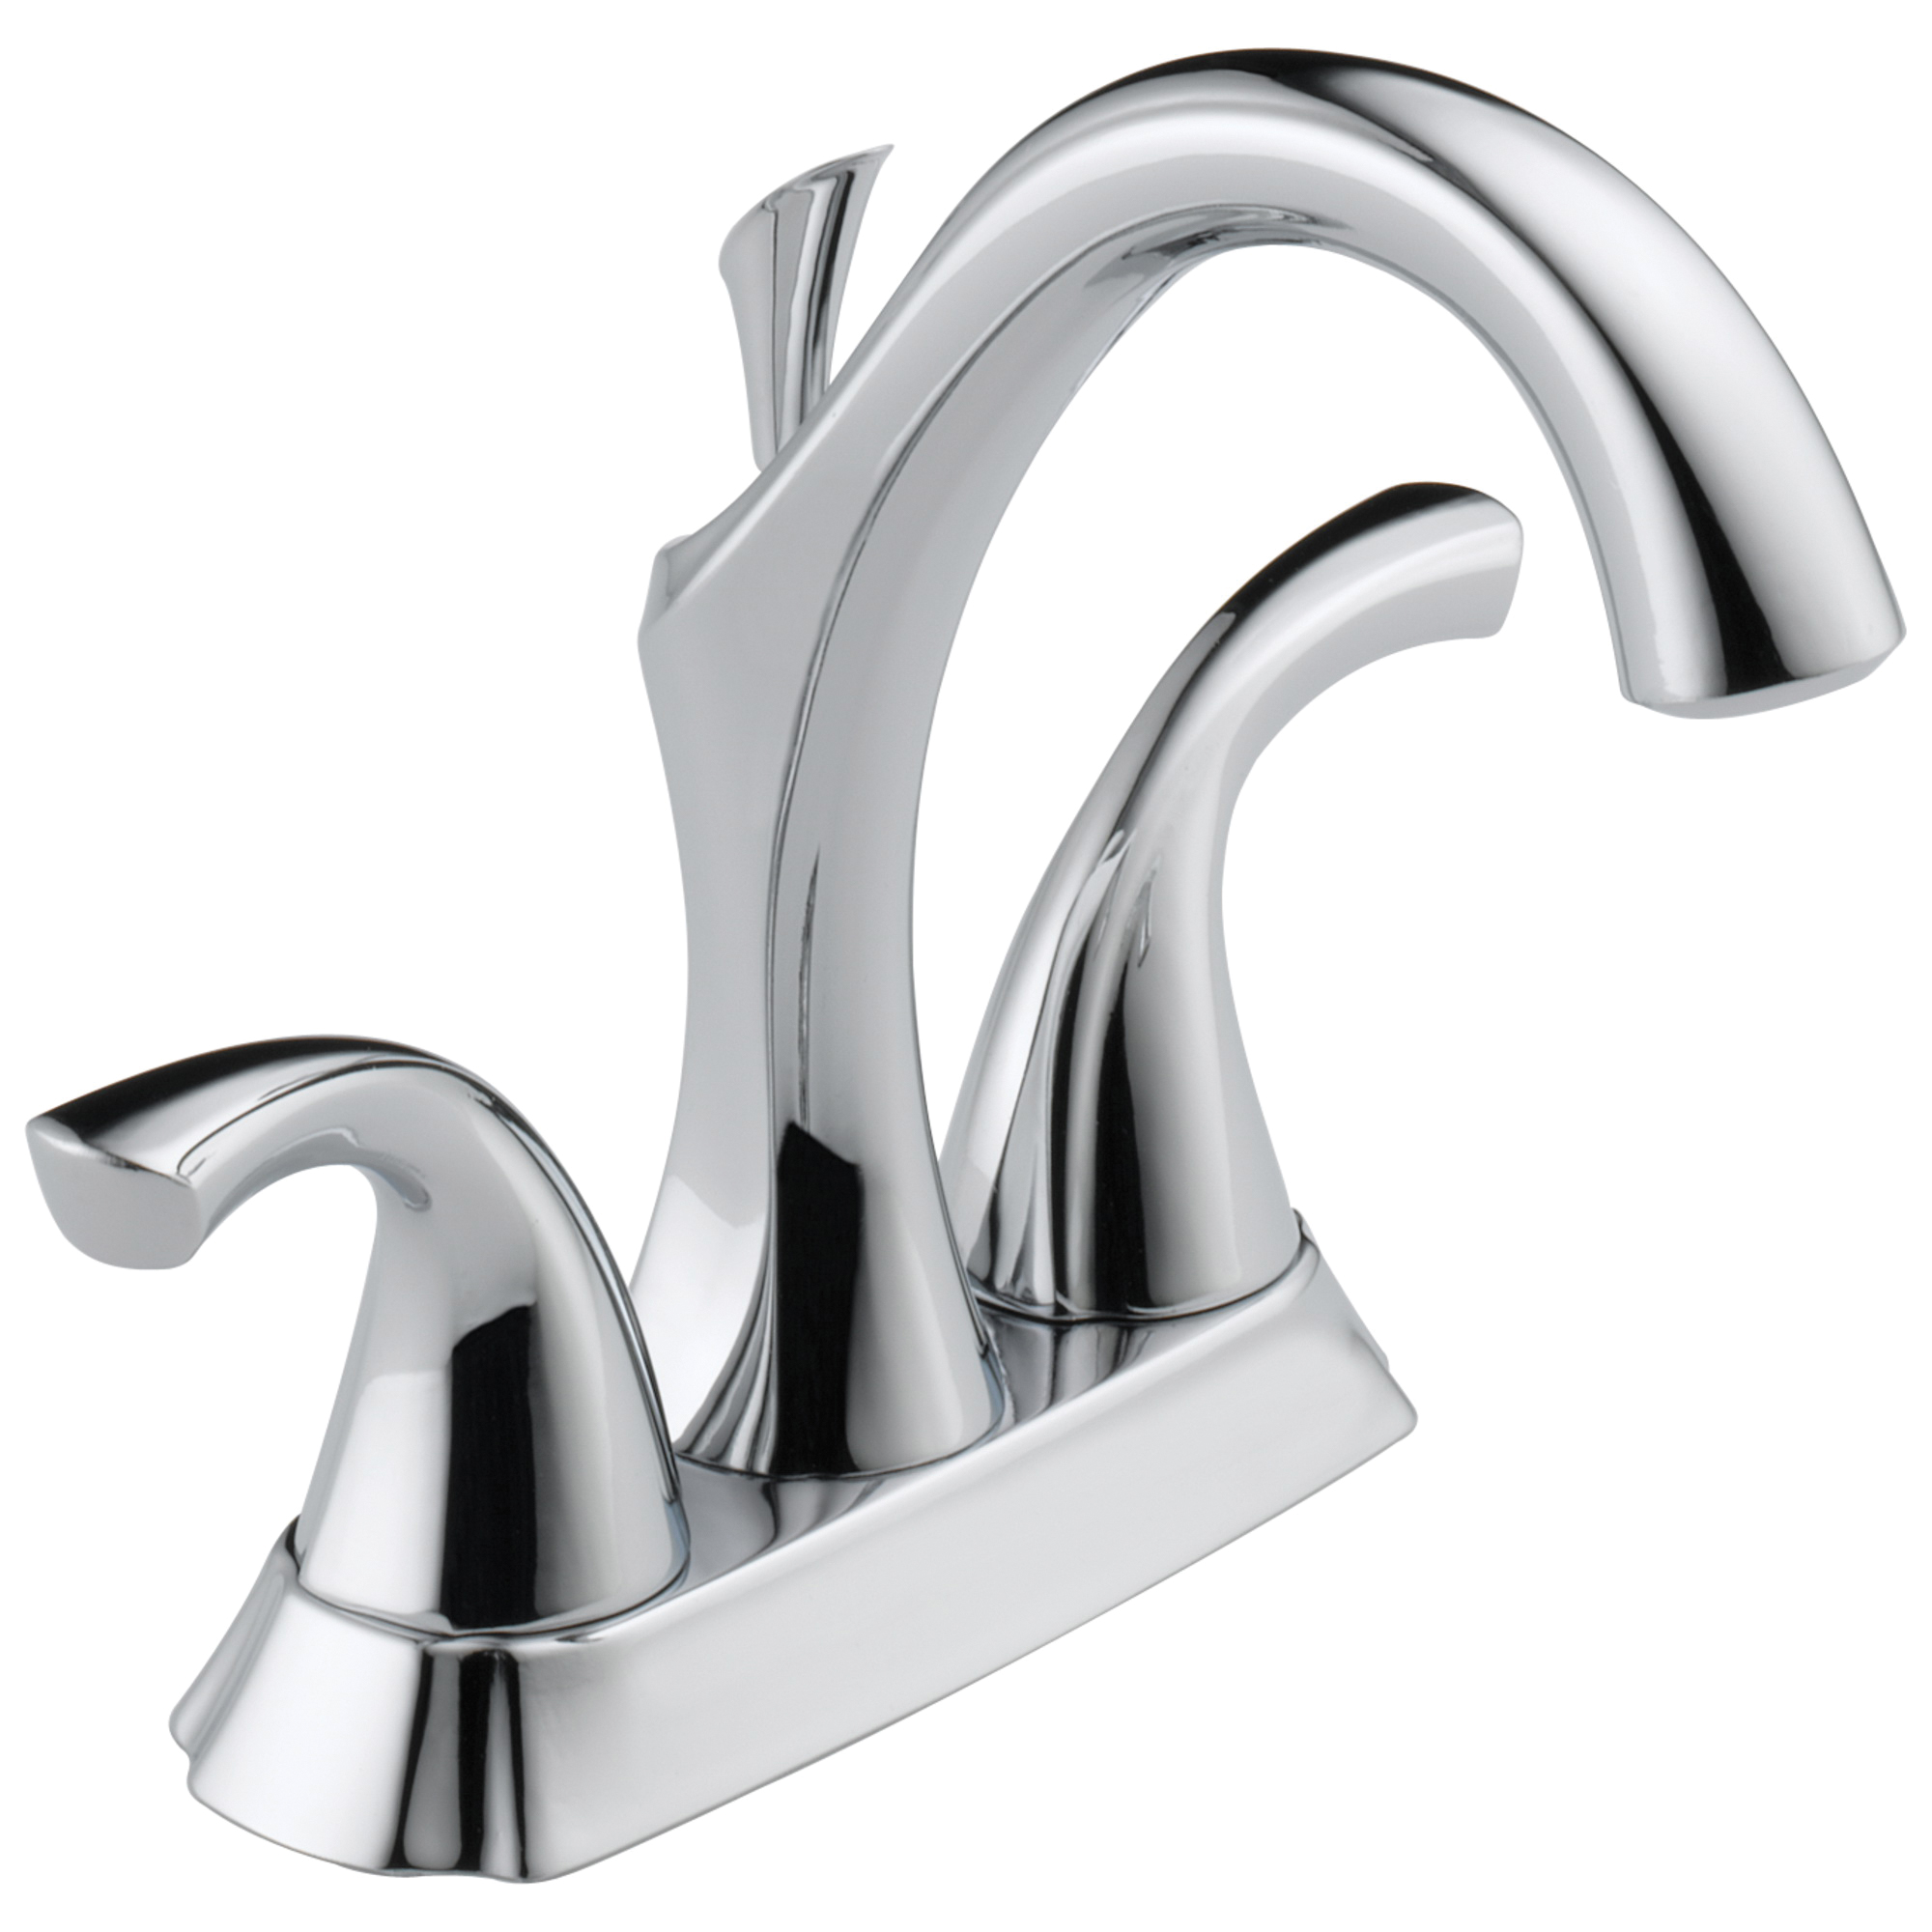 DELTA® 2592-MPU-DST Centerset Lavatory Faucet, Addison™, Chrome Plated, 2 Handles, Metal Pop-Up Drain, 1.2 gpm